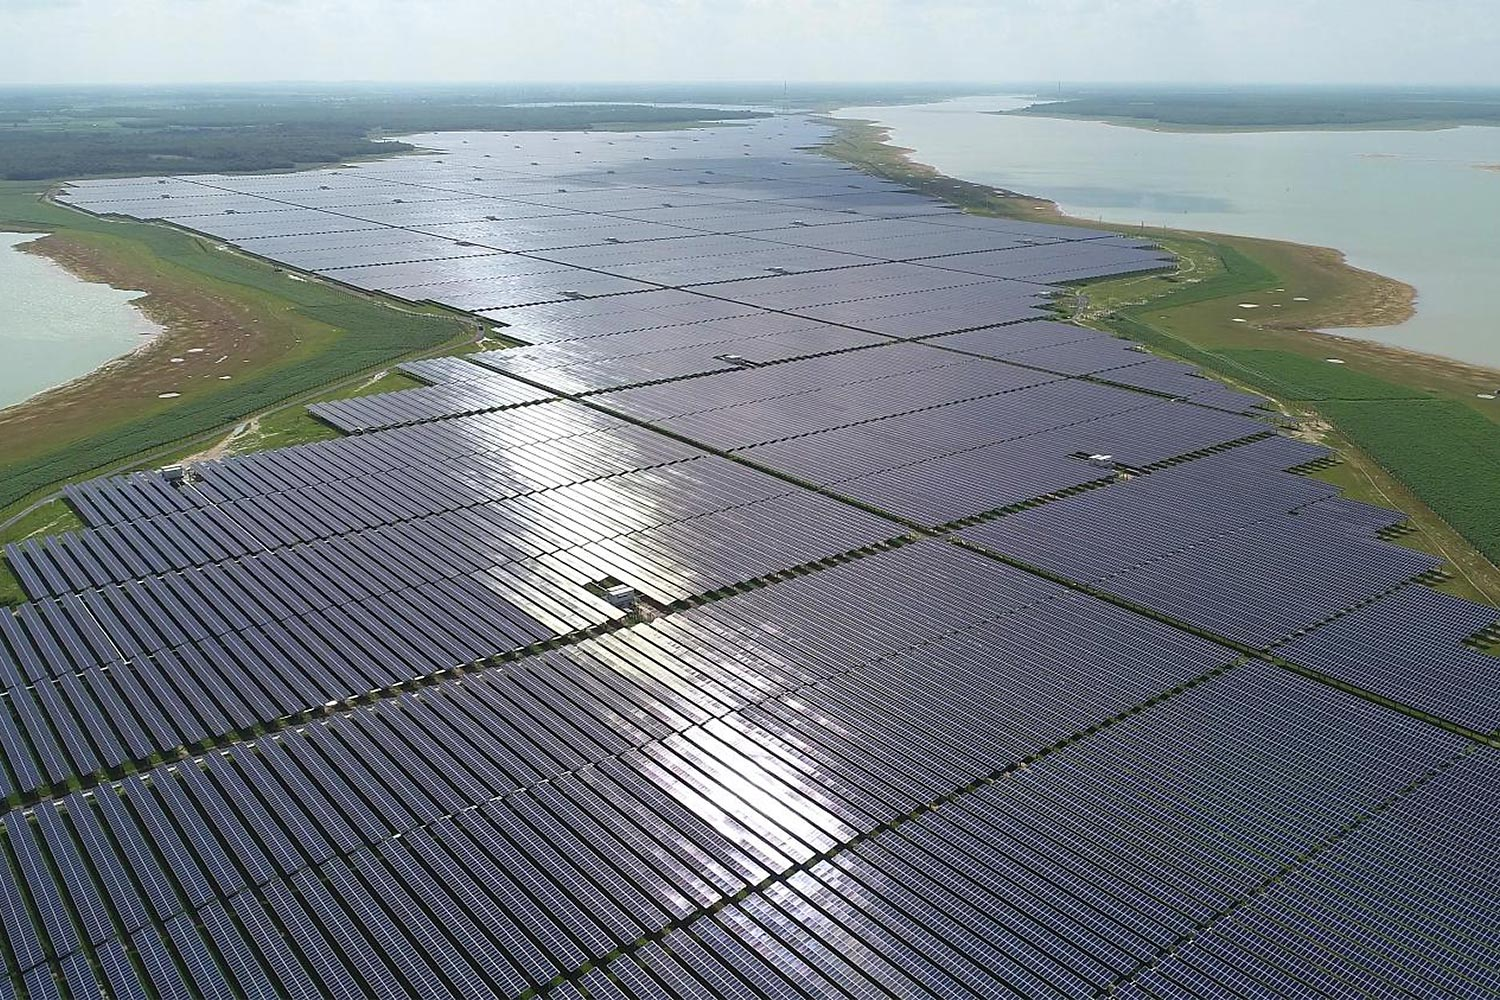 DTE 1 and 2, the largest solar power project in Southeast Asia, located in Tay Ninh, Vietnam.